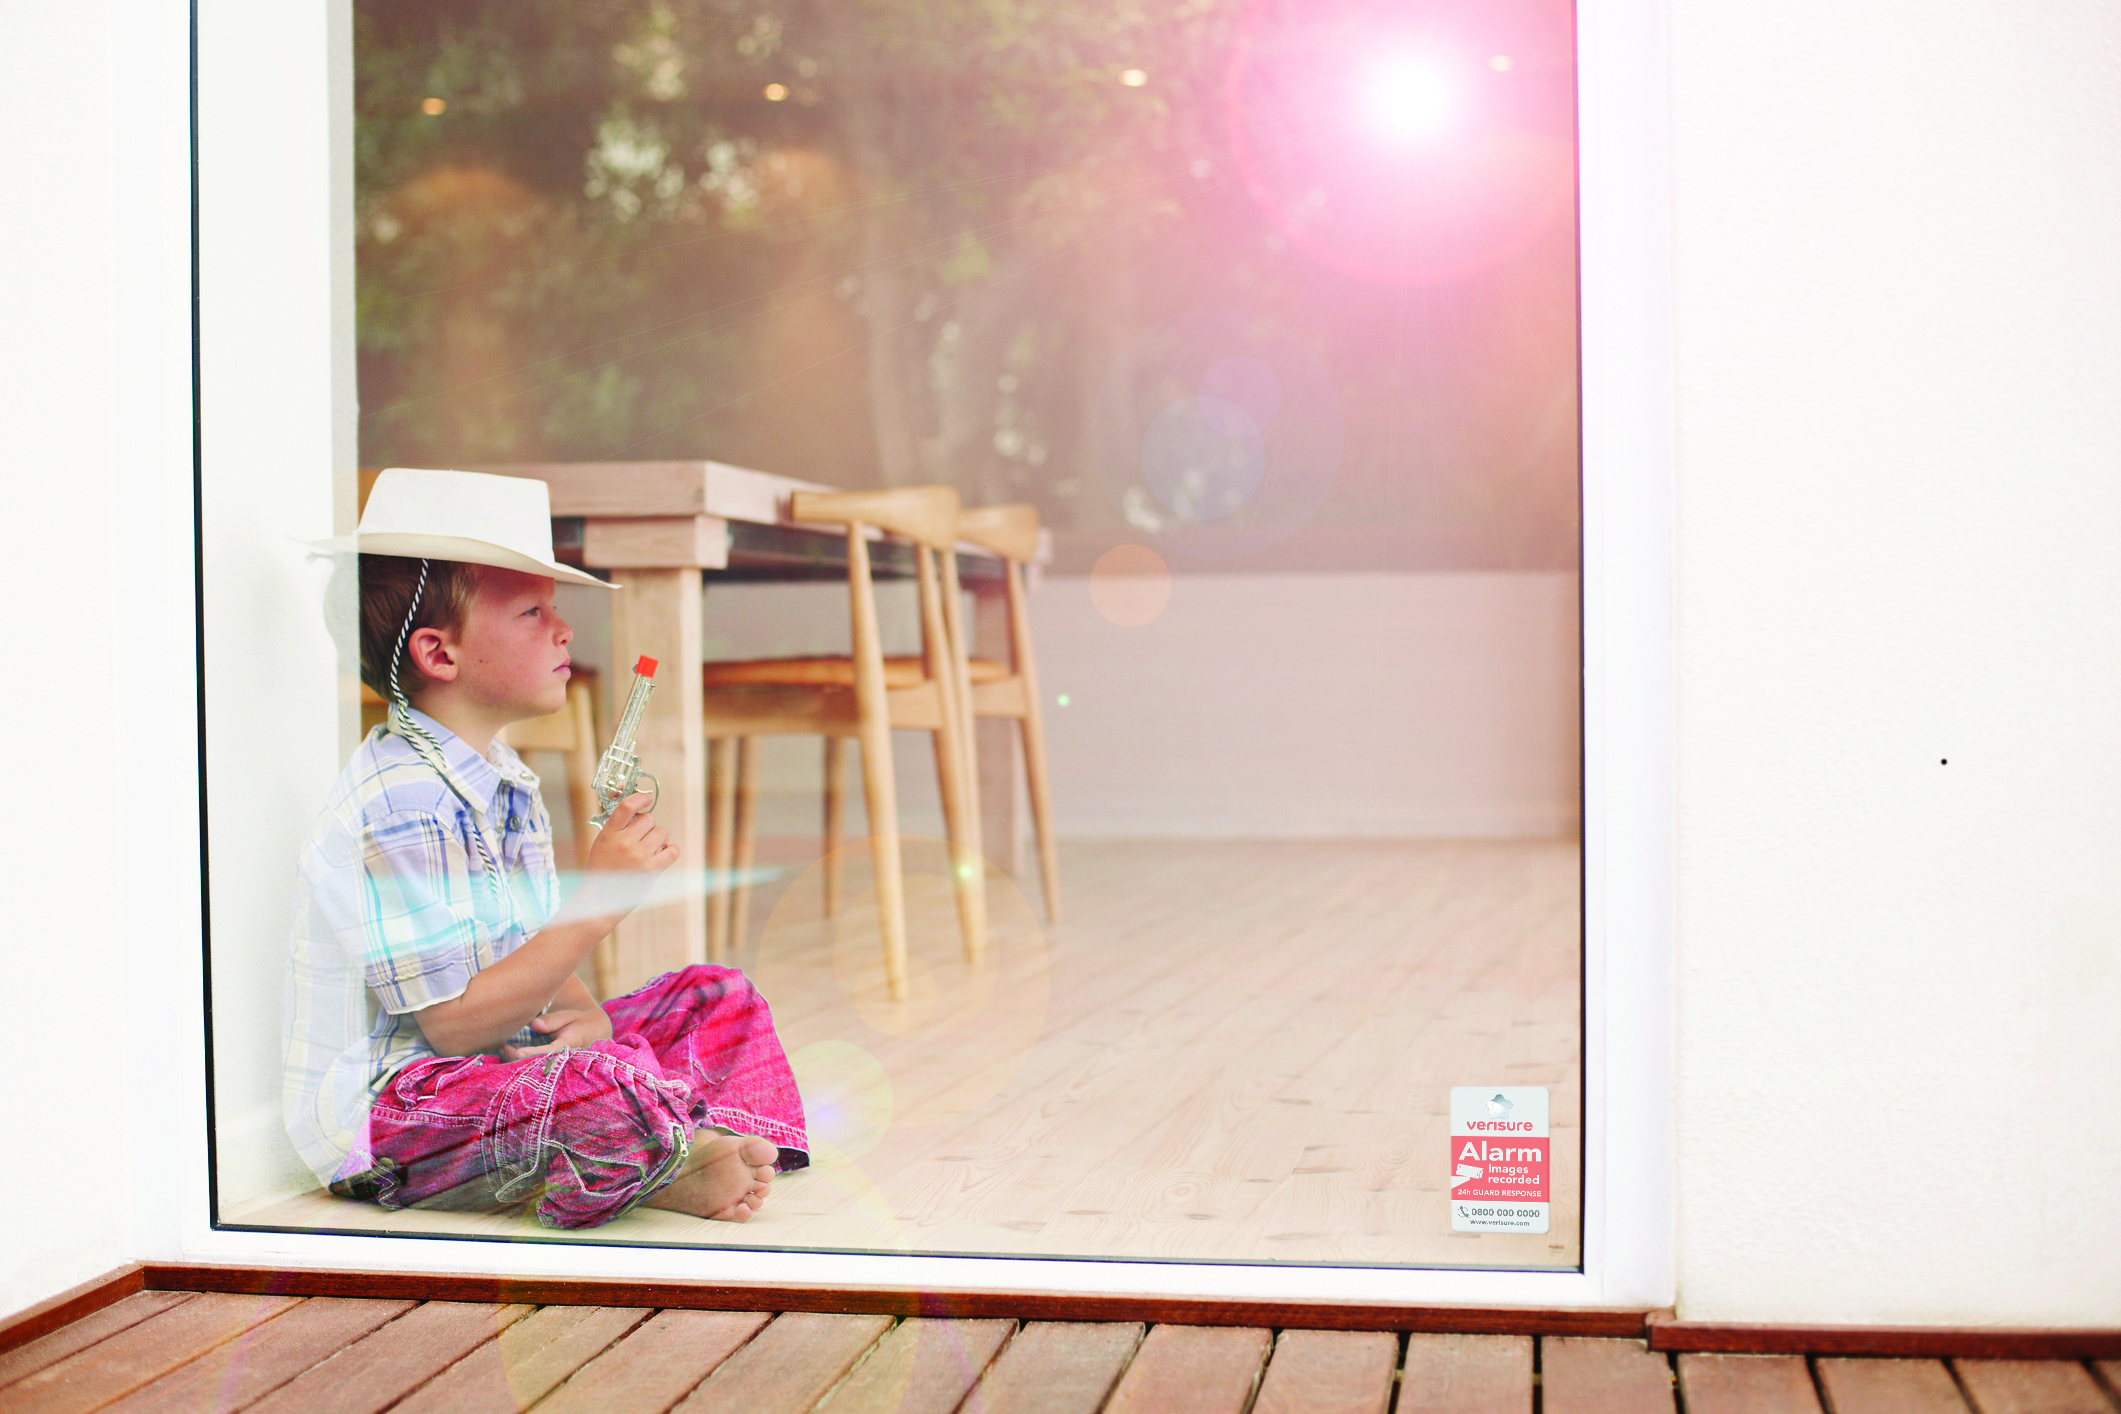 Secure your home for your children - Verisure Smart Alarms